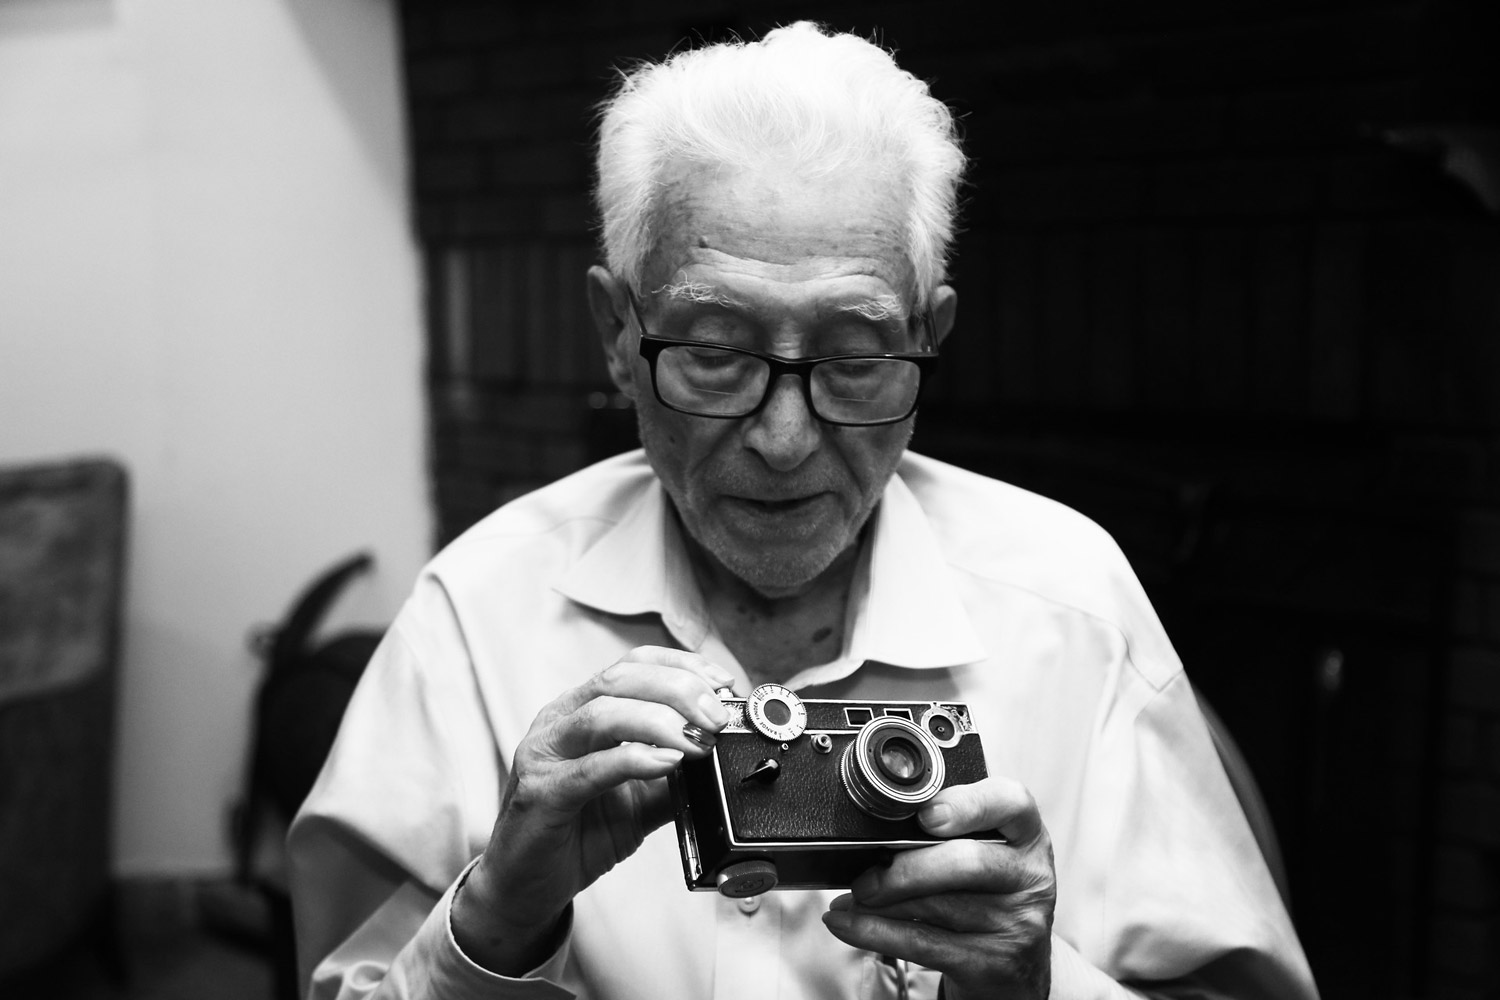 Tony Vaccaro, © Ming Fai Chan, Brooklyn, NY, United States, Amateur : Celebrities, PDN Faces - Portrait Photography Contest